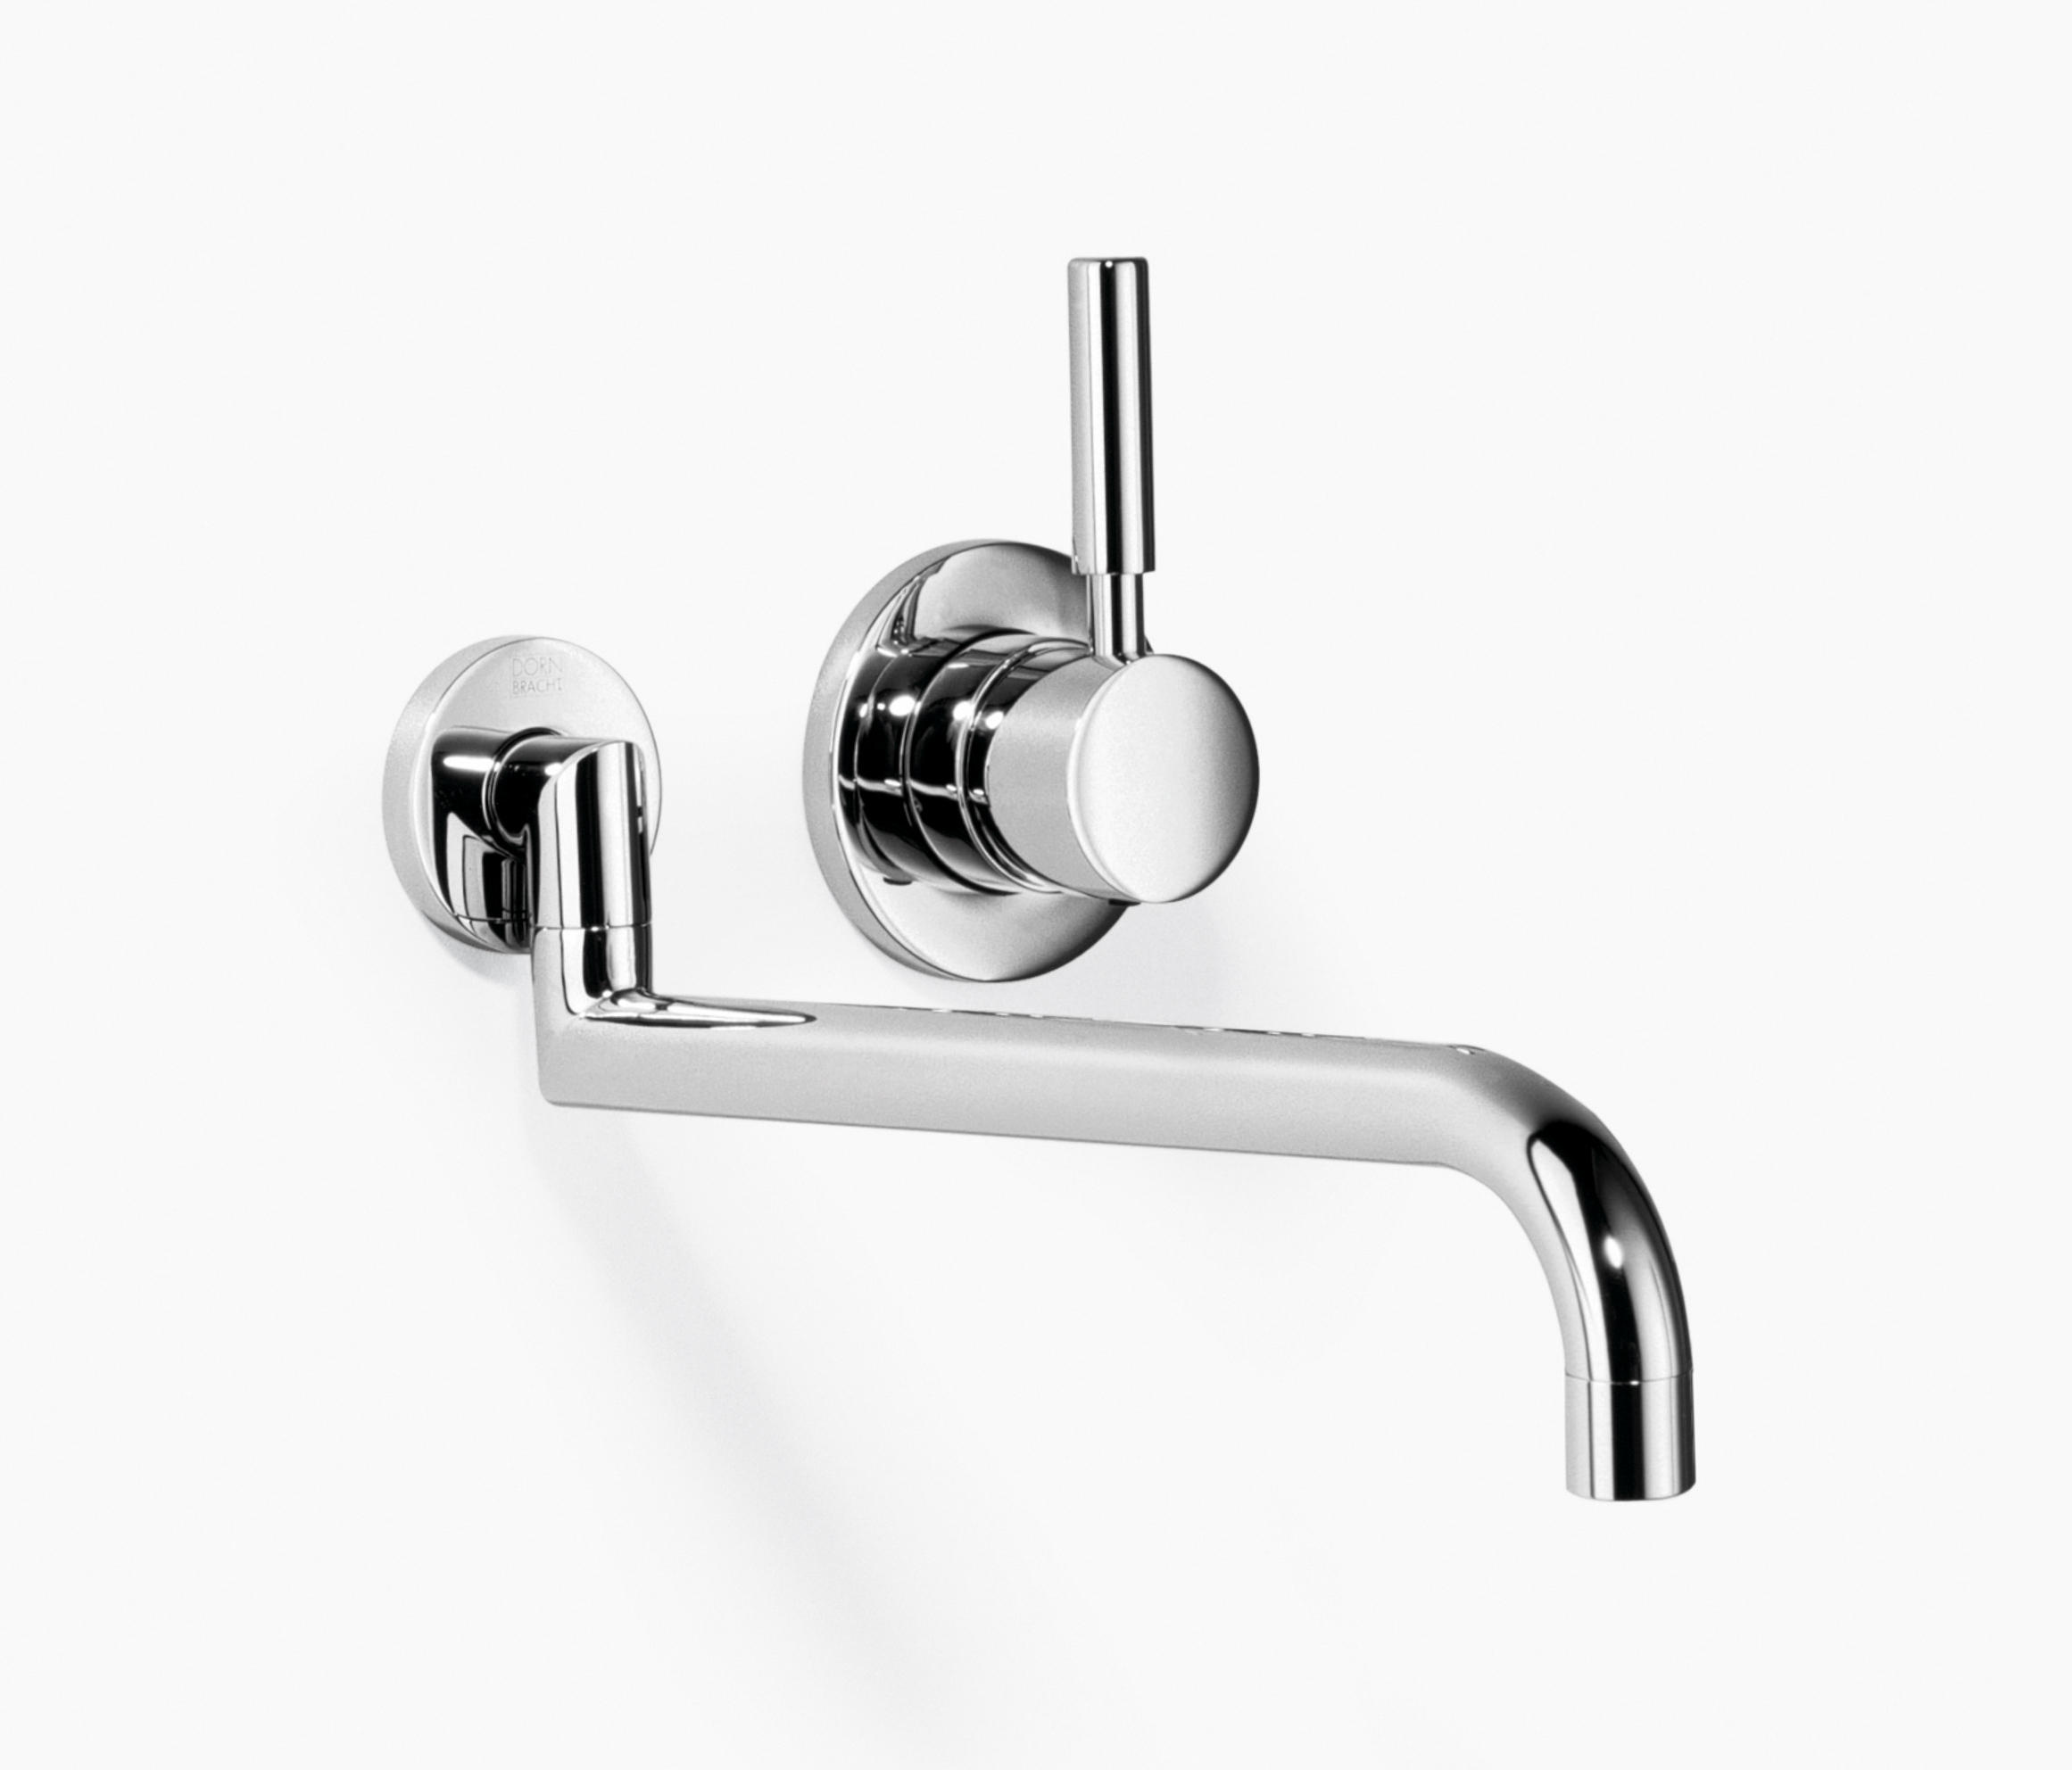 META.02 - WALL-MOUNTED MIXER - Kitchen taps from Dornbracht | Architonic